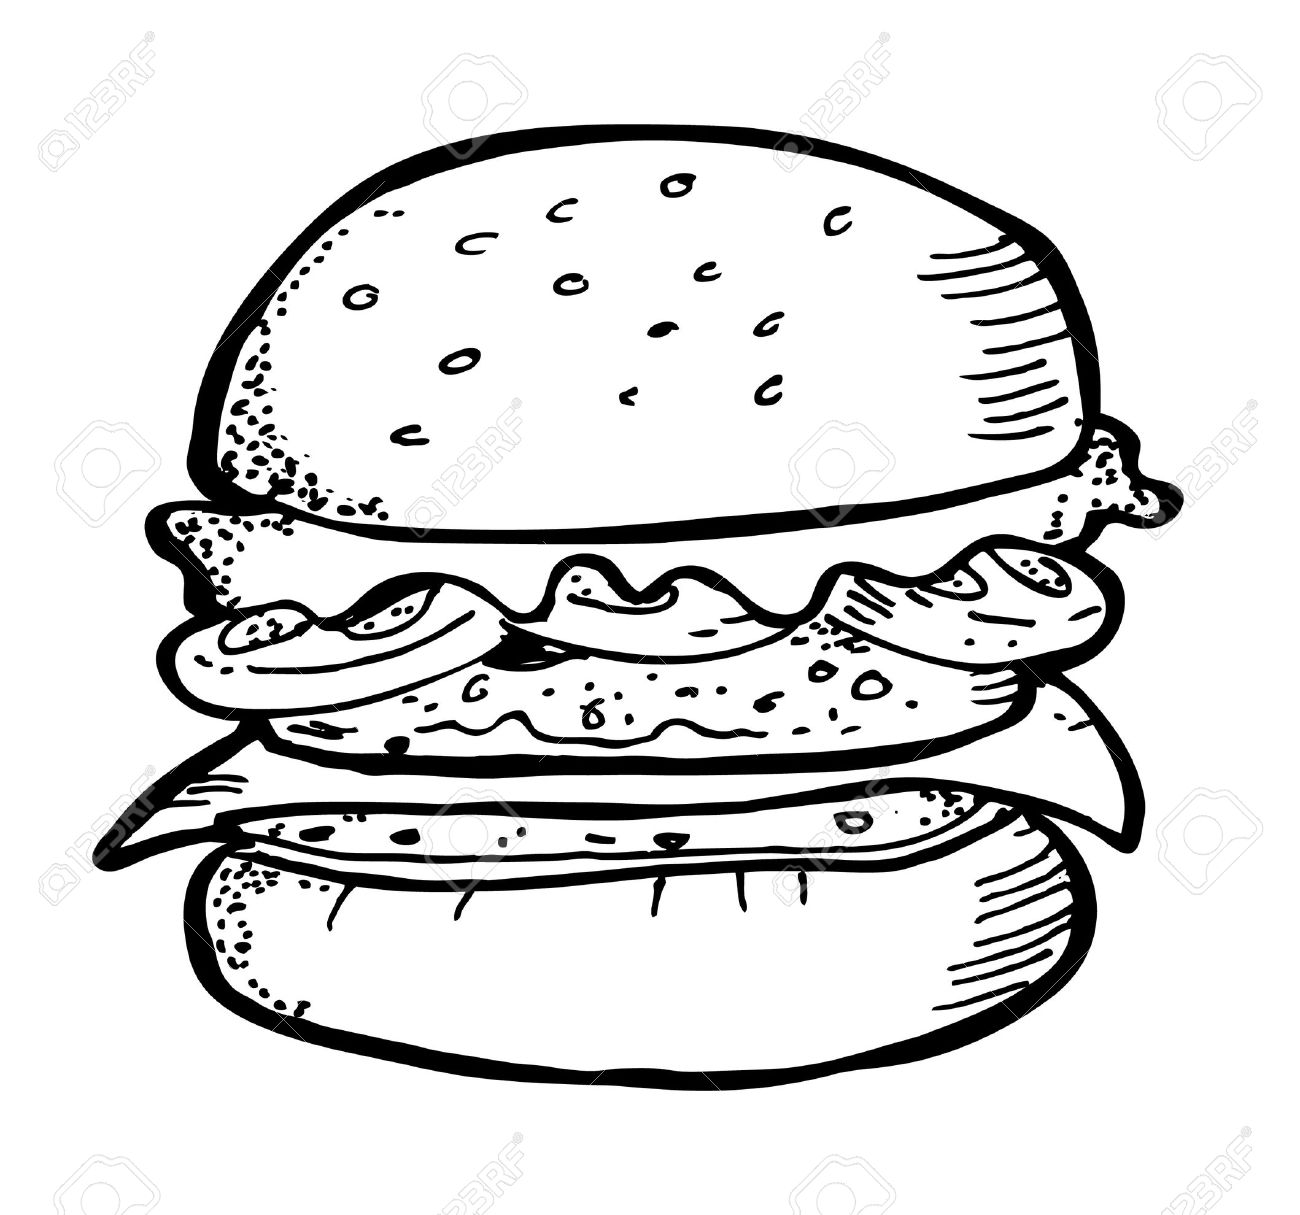 burger doodle clipart Hamburger Patty Clipart Black And White